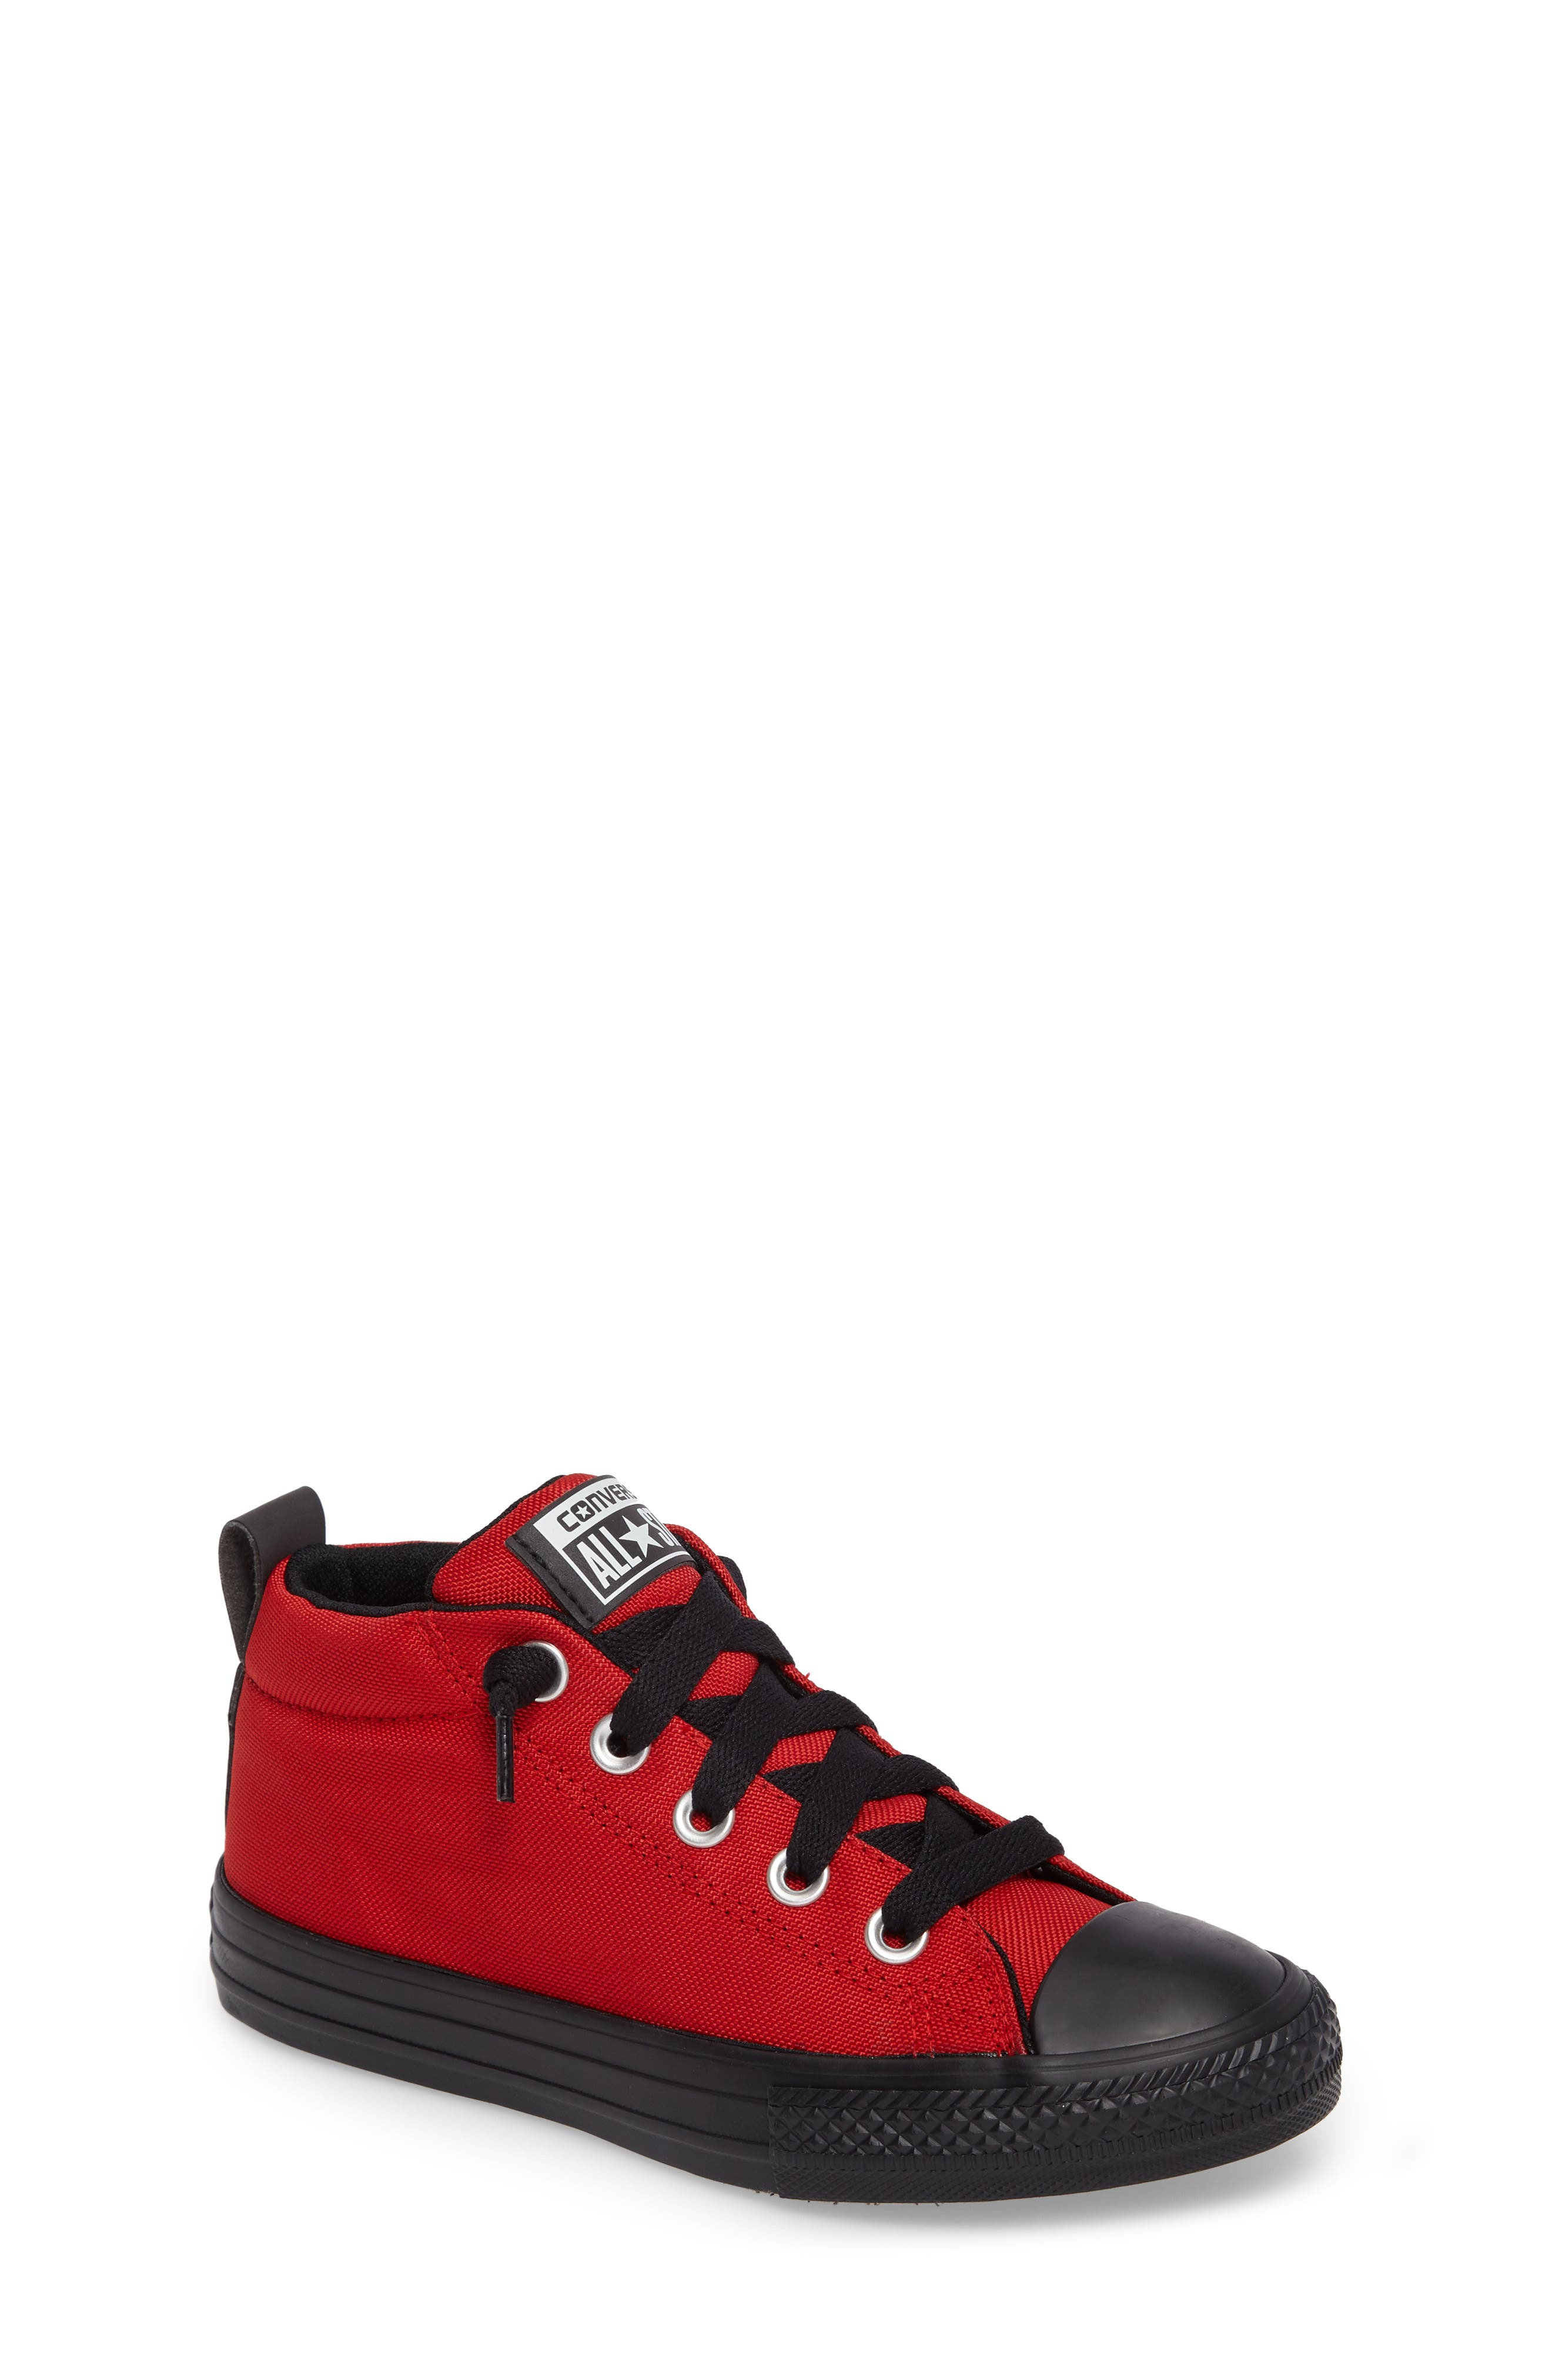 Alternate Image 1 Selected - Converse Chuck Taylor® All Star® Street Mid Top Sneaker (Baby, Walker, Toddler, Little Kid & Big Kid)